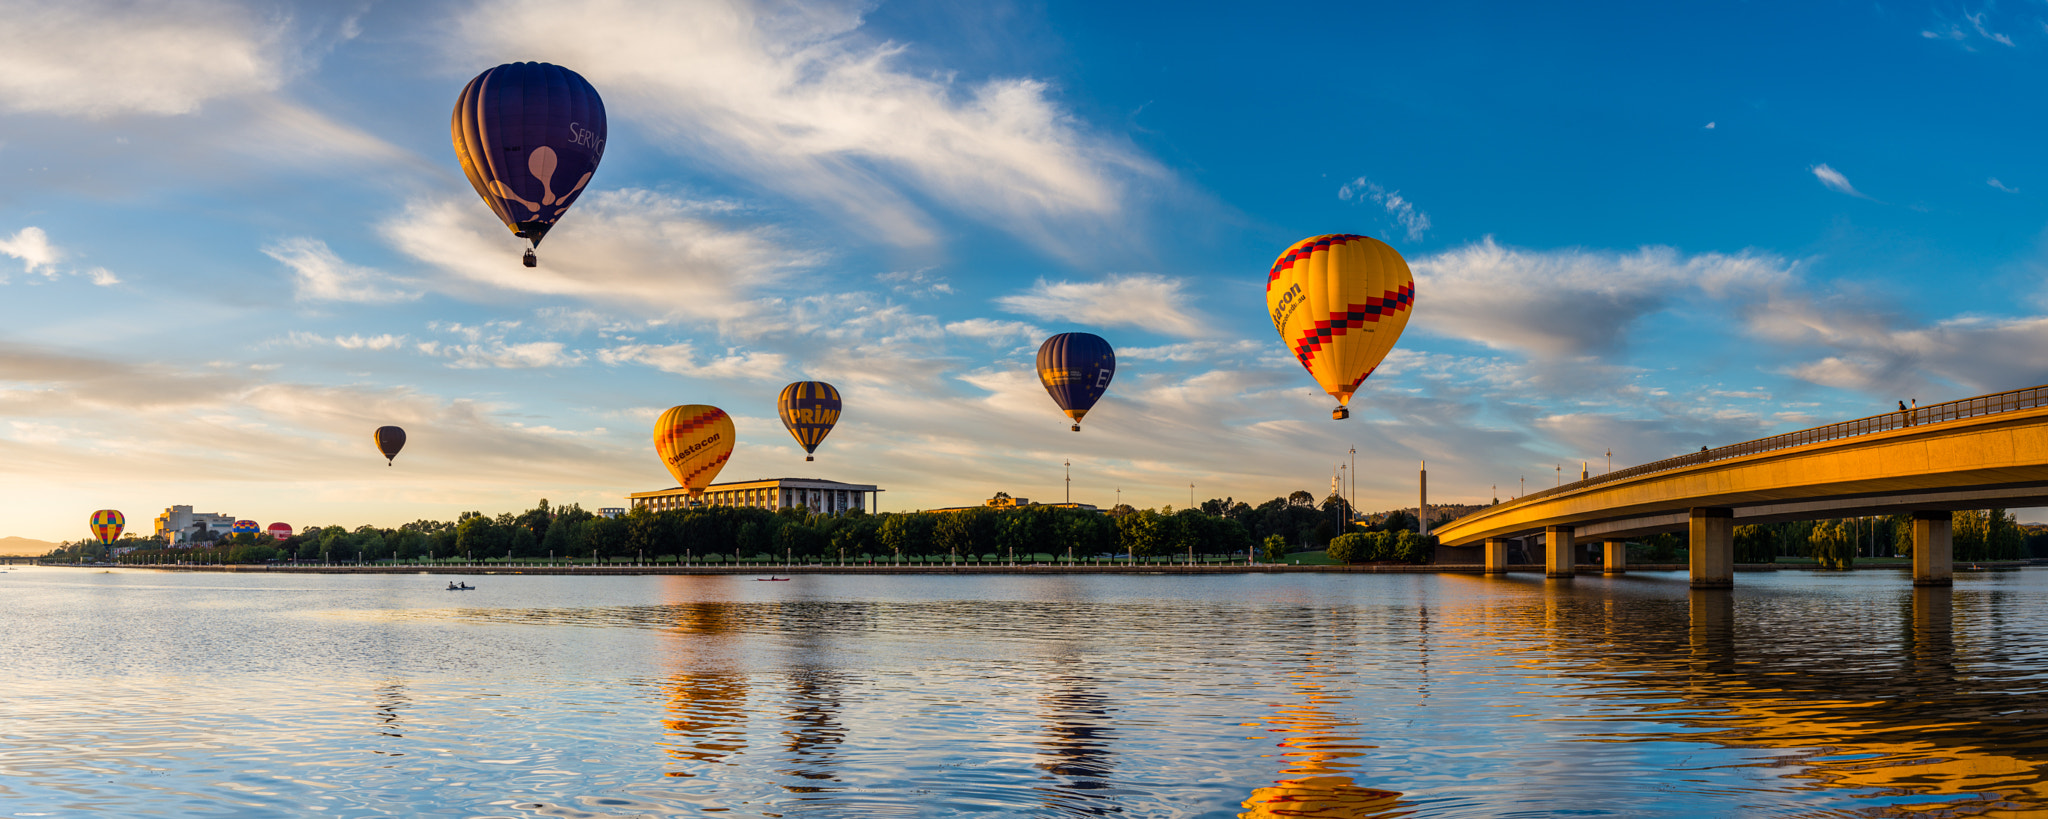 Photograph The Balloon Spectacular by Craig Holloway on 500px